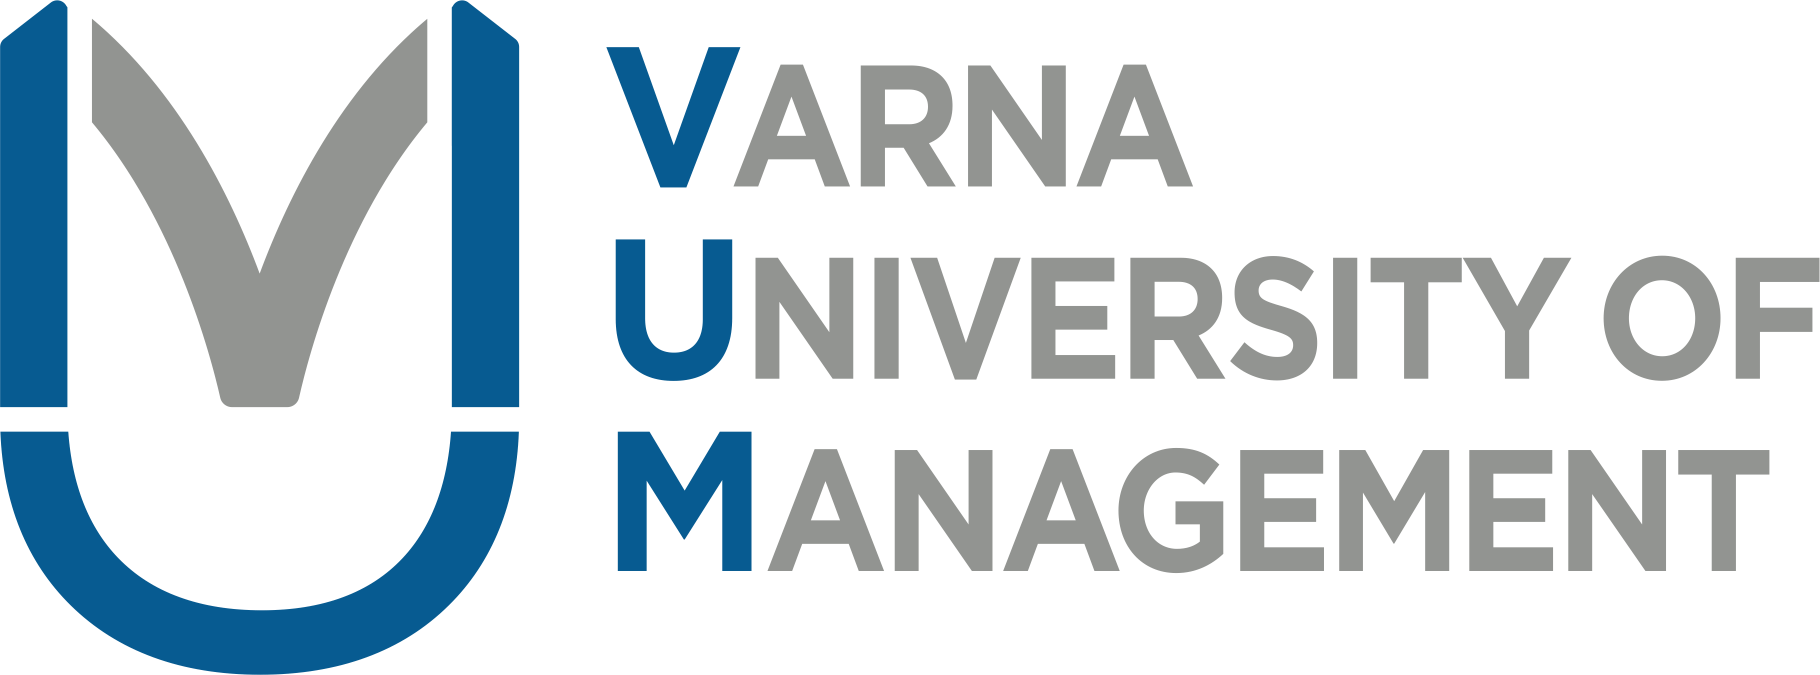 universality of management The bcom (hons) in management is one fulltime year of postgraduate study following the bachelor of commerce degree entry is based on superior grades in the subject area in the relevant undergraduate courses.